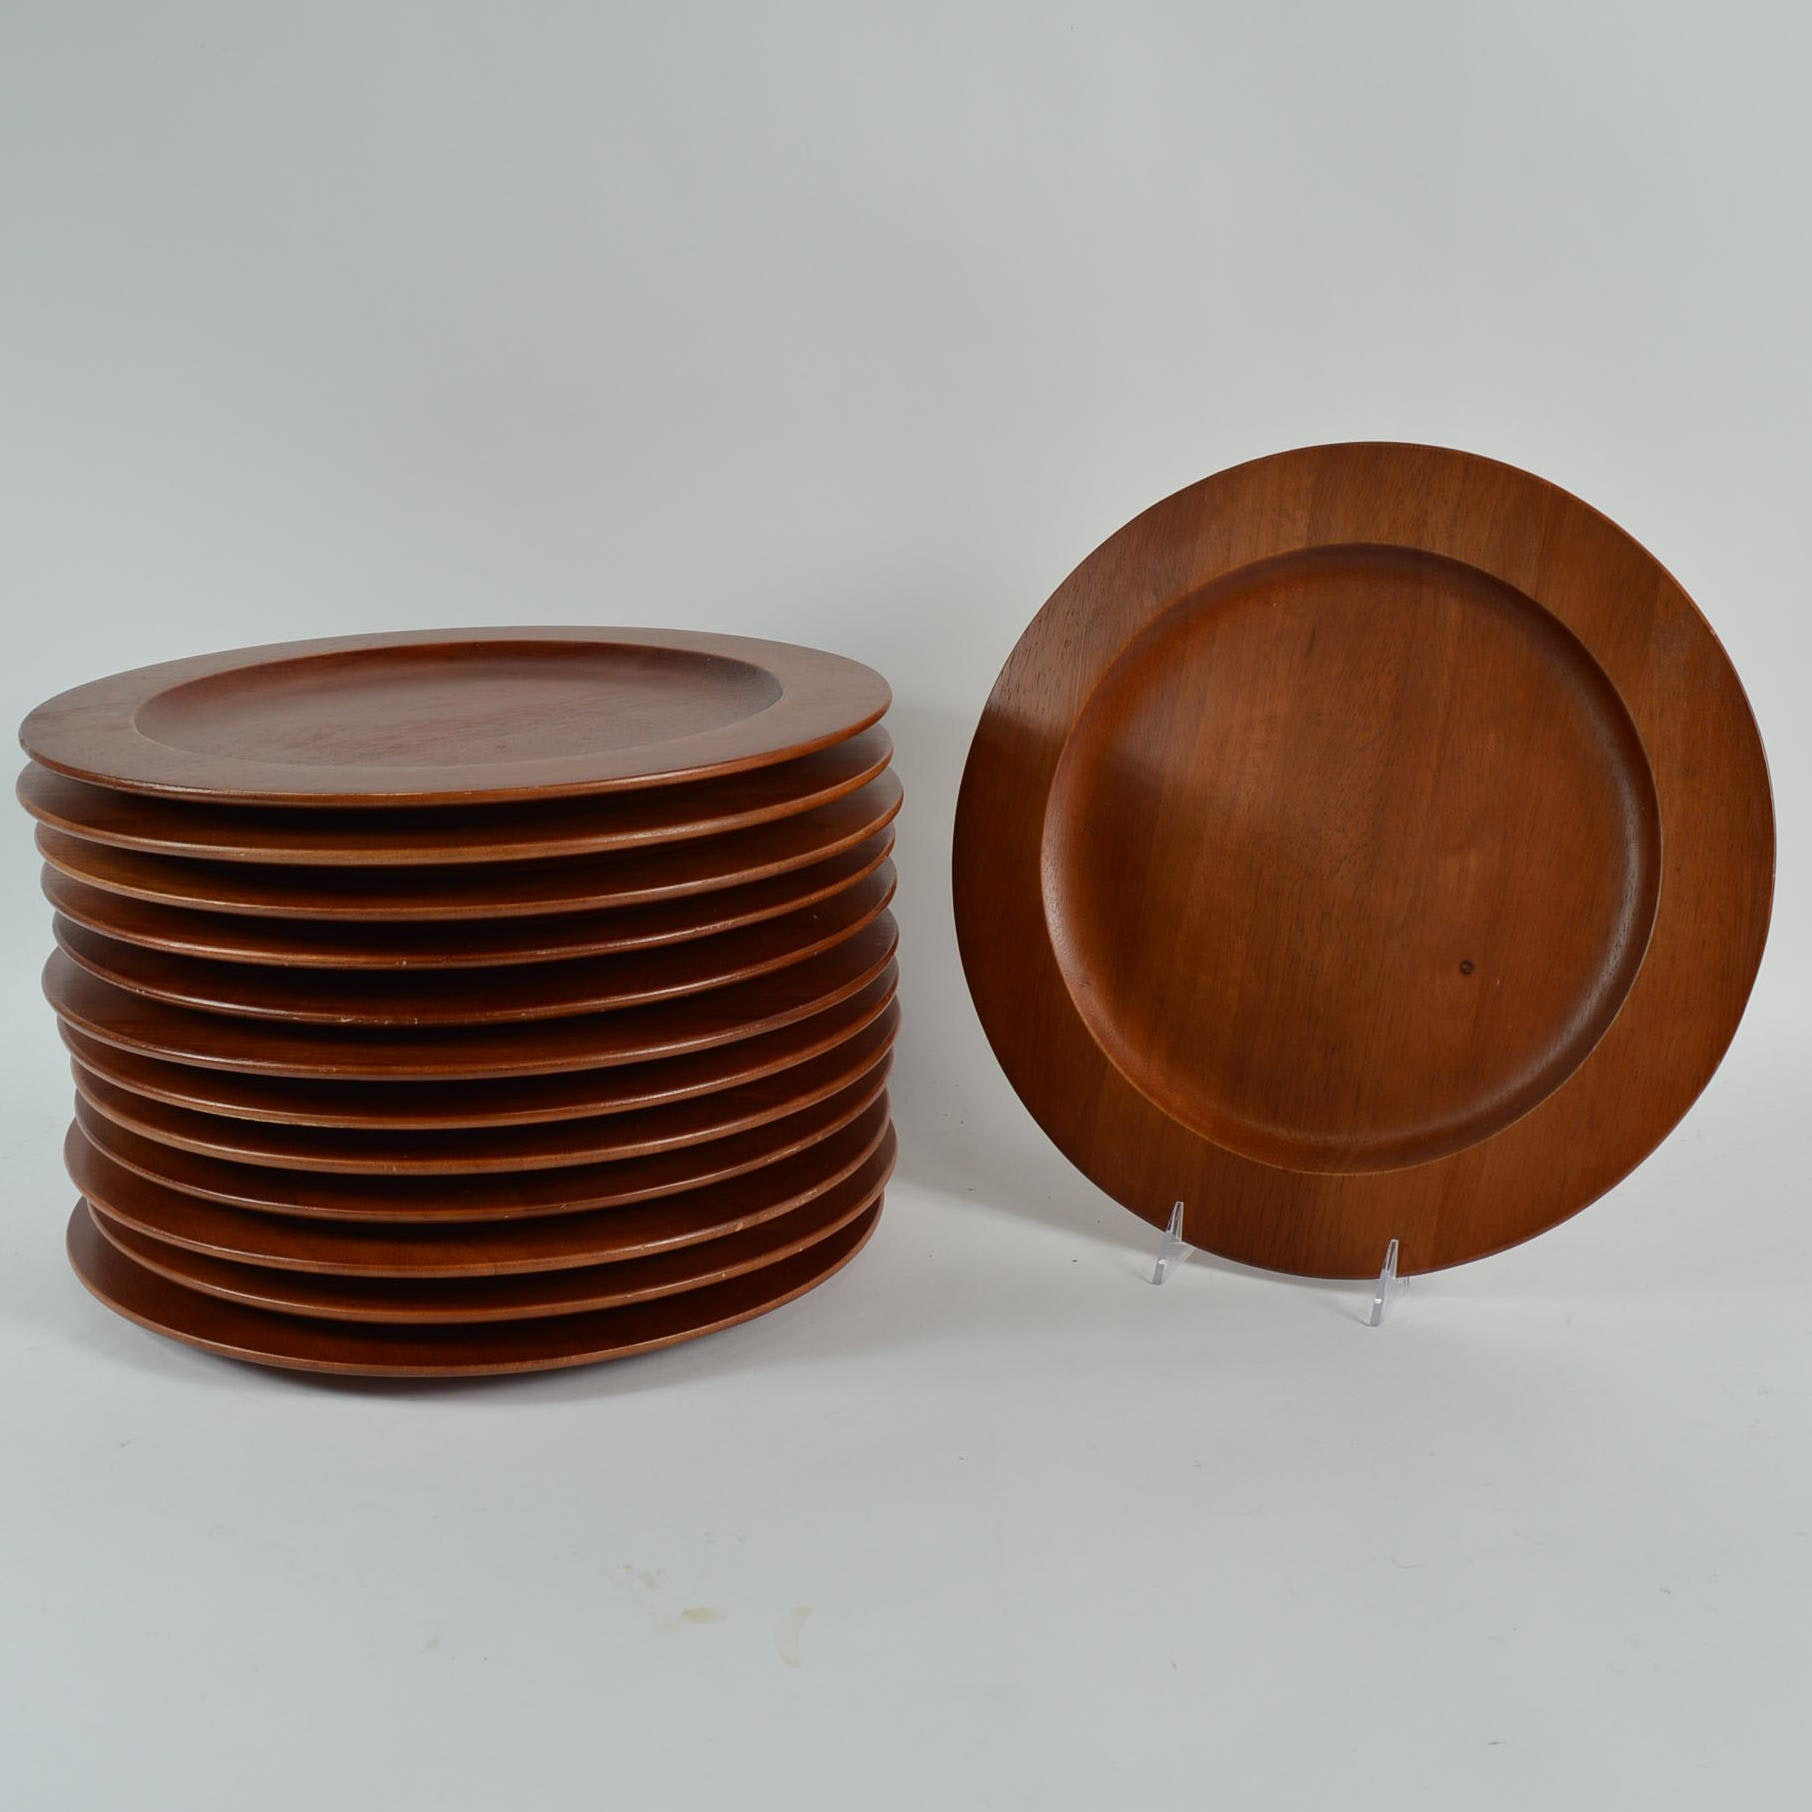 Set of Acacia Wood Dinner Plates From The Cellar ... & Set of Acacia Wood Dinner Plates From The Cellar : EBTH